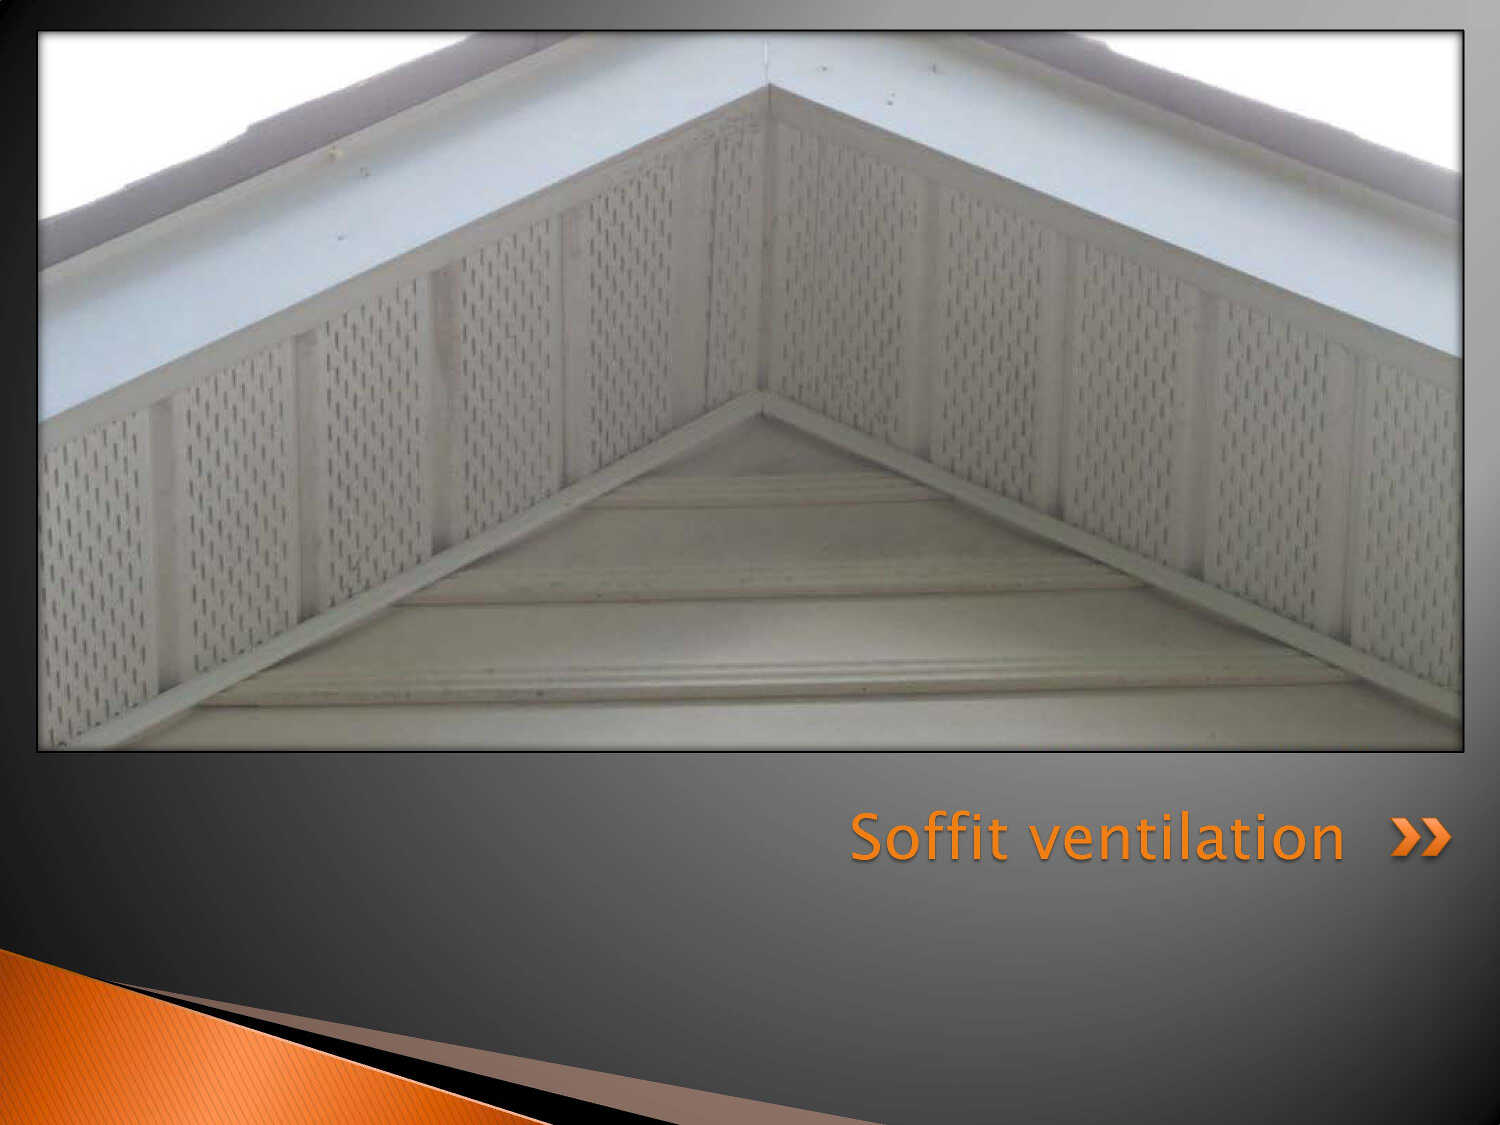 Ventilation Systems Aaa Roof Technologies Inc 866 561 5374